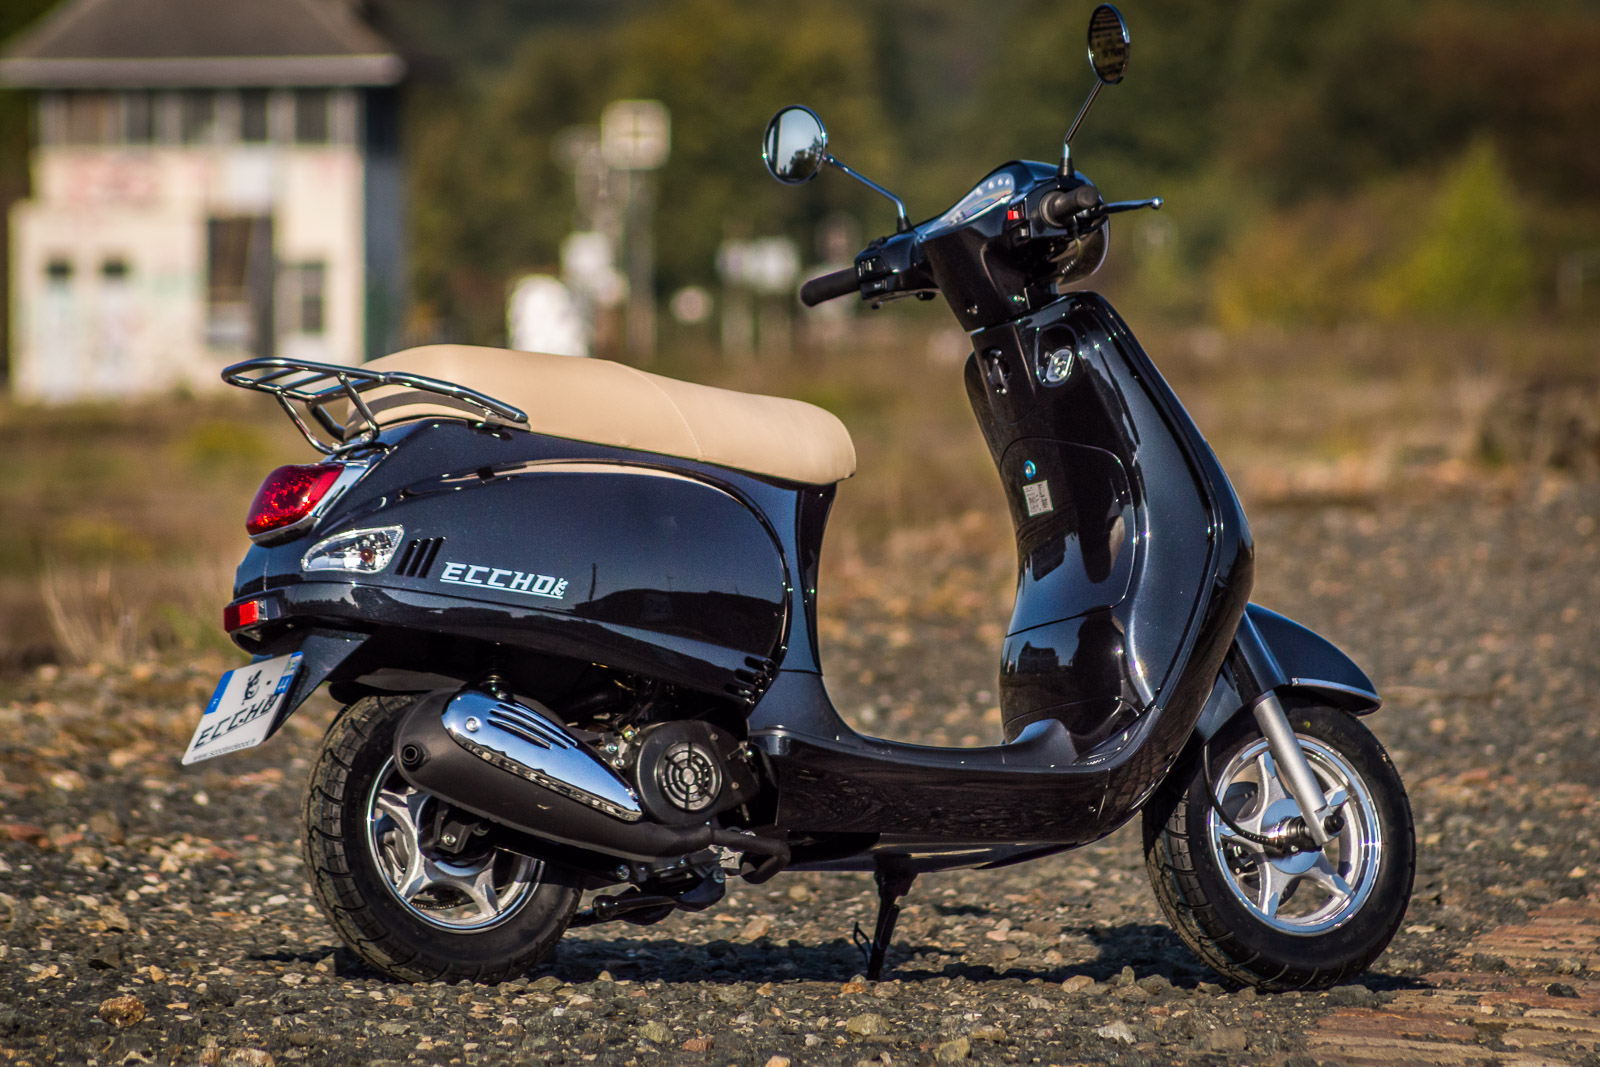 SCOOTER-50-ECCHO-VPX-03